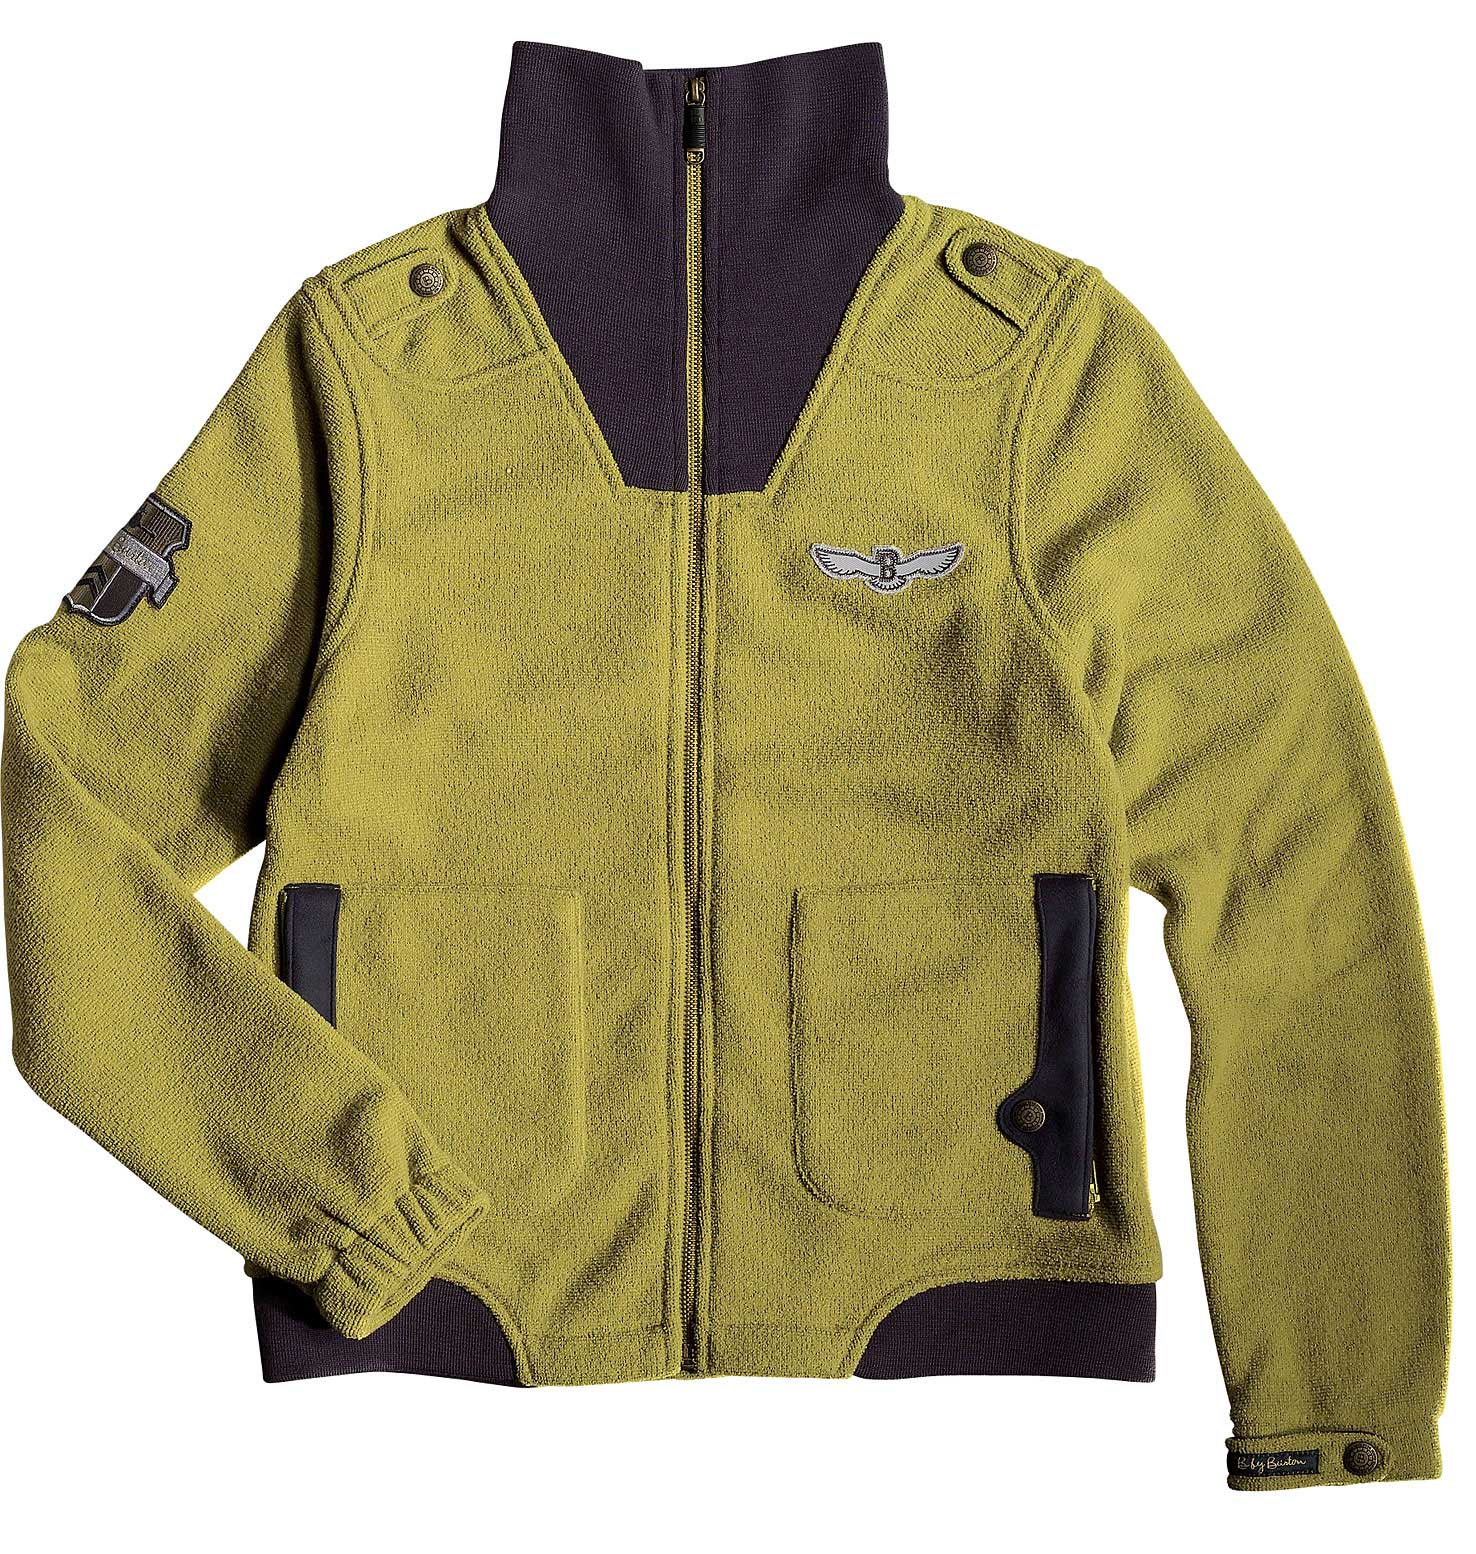 Snowboard Winter jackets that really warm you up this cold season. The Burton Memphis belle fleece jacket is an incredibly warm. This jacket also might be known by its nick name bomber warmth jacket. Made from Polyester Sherpa Fleece material has Custom Zipper Pull feature. Plus has cool aviation inspired patches around the Memphis belle fleece jacket.Key Features of the of the Burton Memphis Belle Fleece Jacket: 480G Polyester Sherpa Fleece Chunky Ribbed Collar Aviation-Inspired Patches Custom Zipper Pull - $37.95